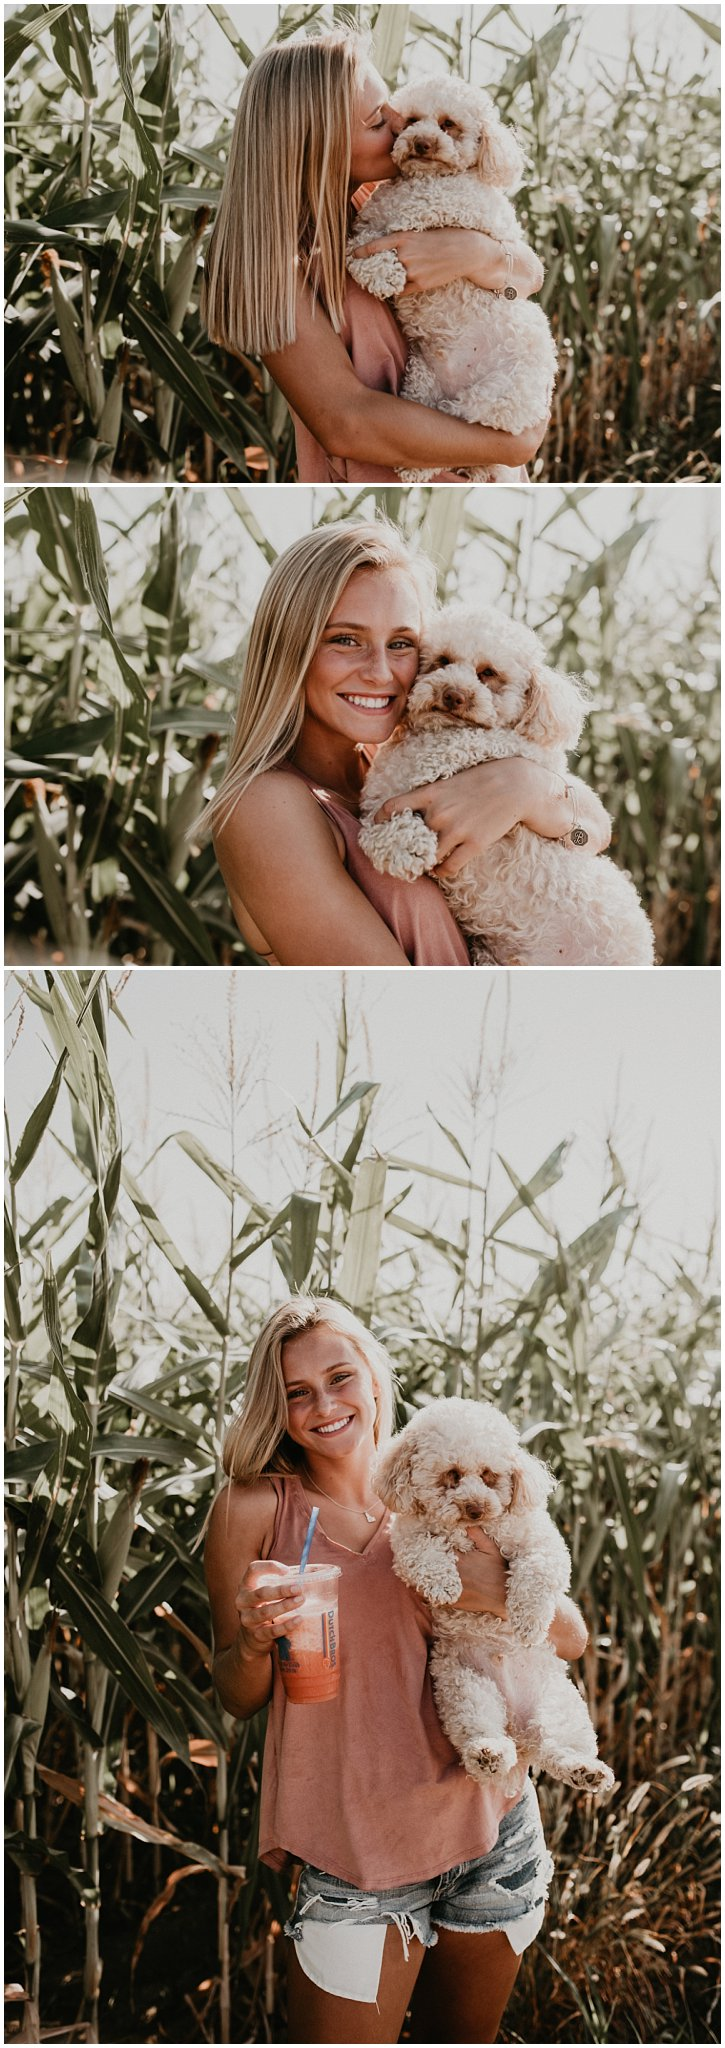 Boise Senior Photographer Makayla Madden Photography Corn Field Kuna Summer Senior Session Location Ideas Kuna High Brooke Ray Laughter Fun Eyes Unique Puppy Dog